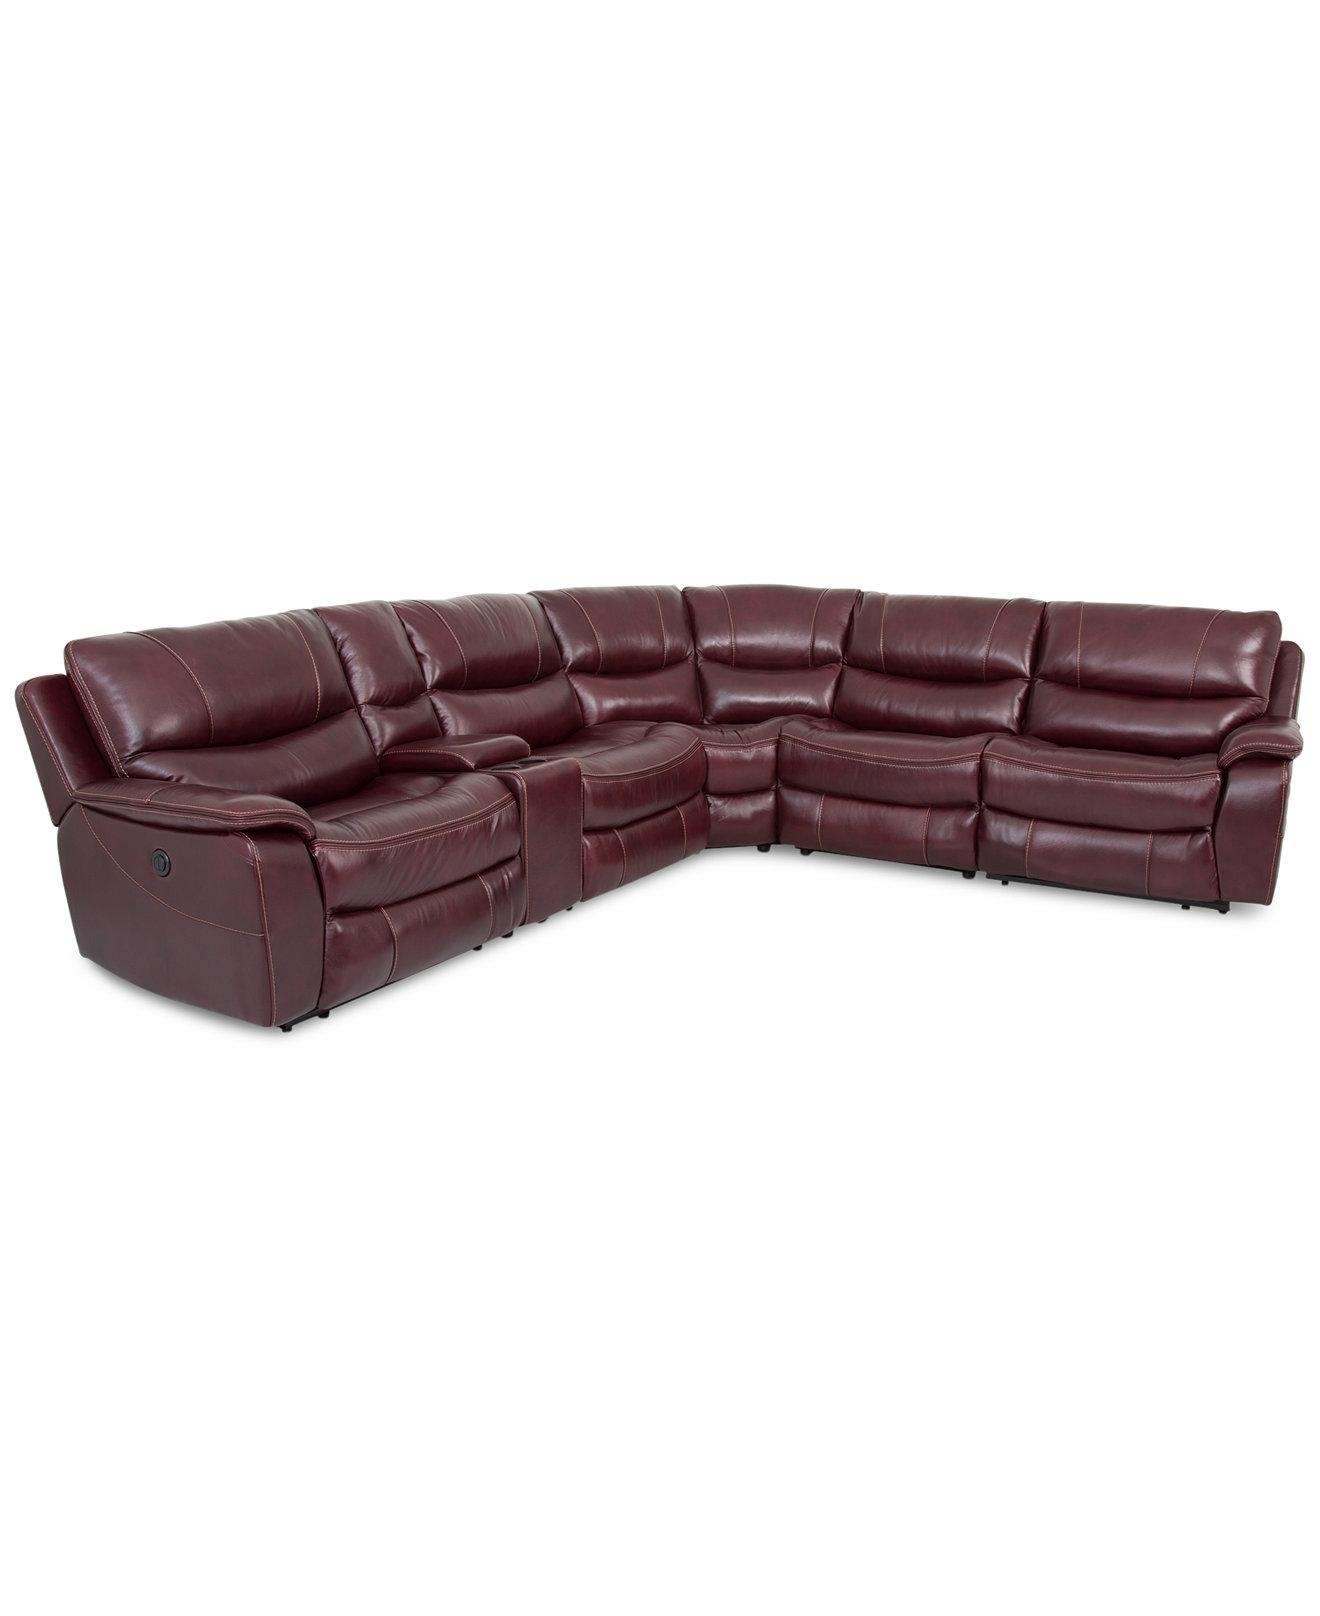 Sofas Center : Impressive Macys Leather Sofa Image Ideas Sofas For Pertaining To Macys Leather Sofas Sectionals (View 20 of 20)